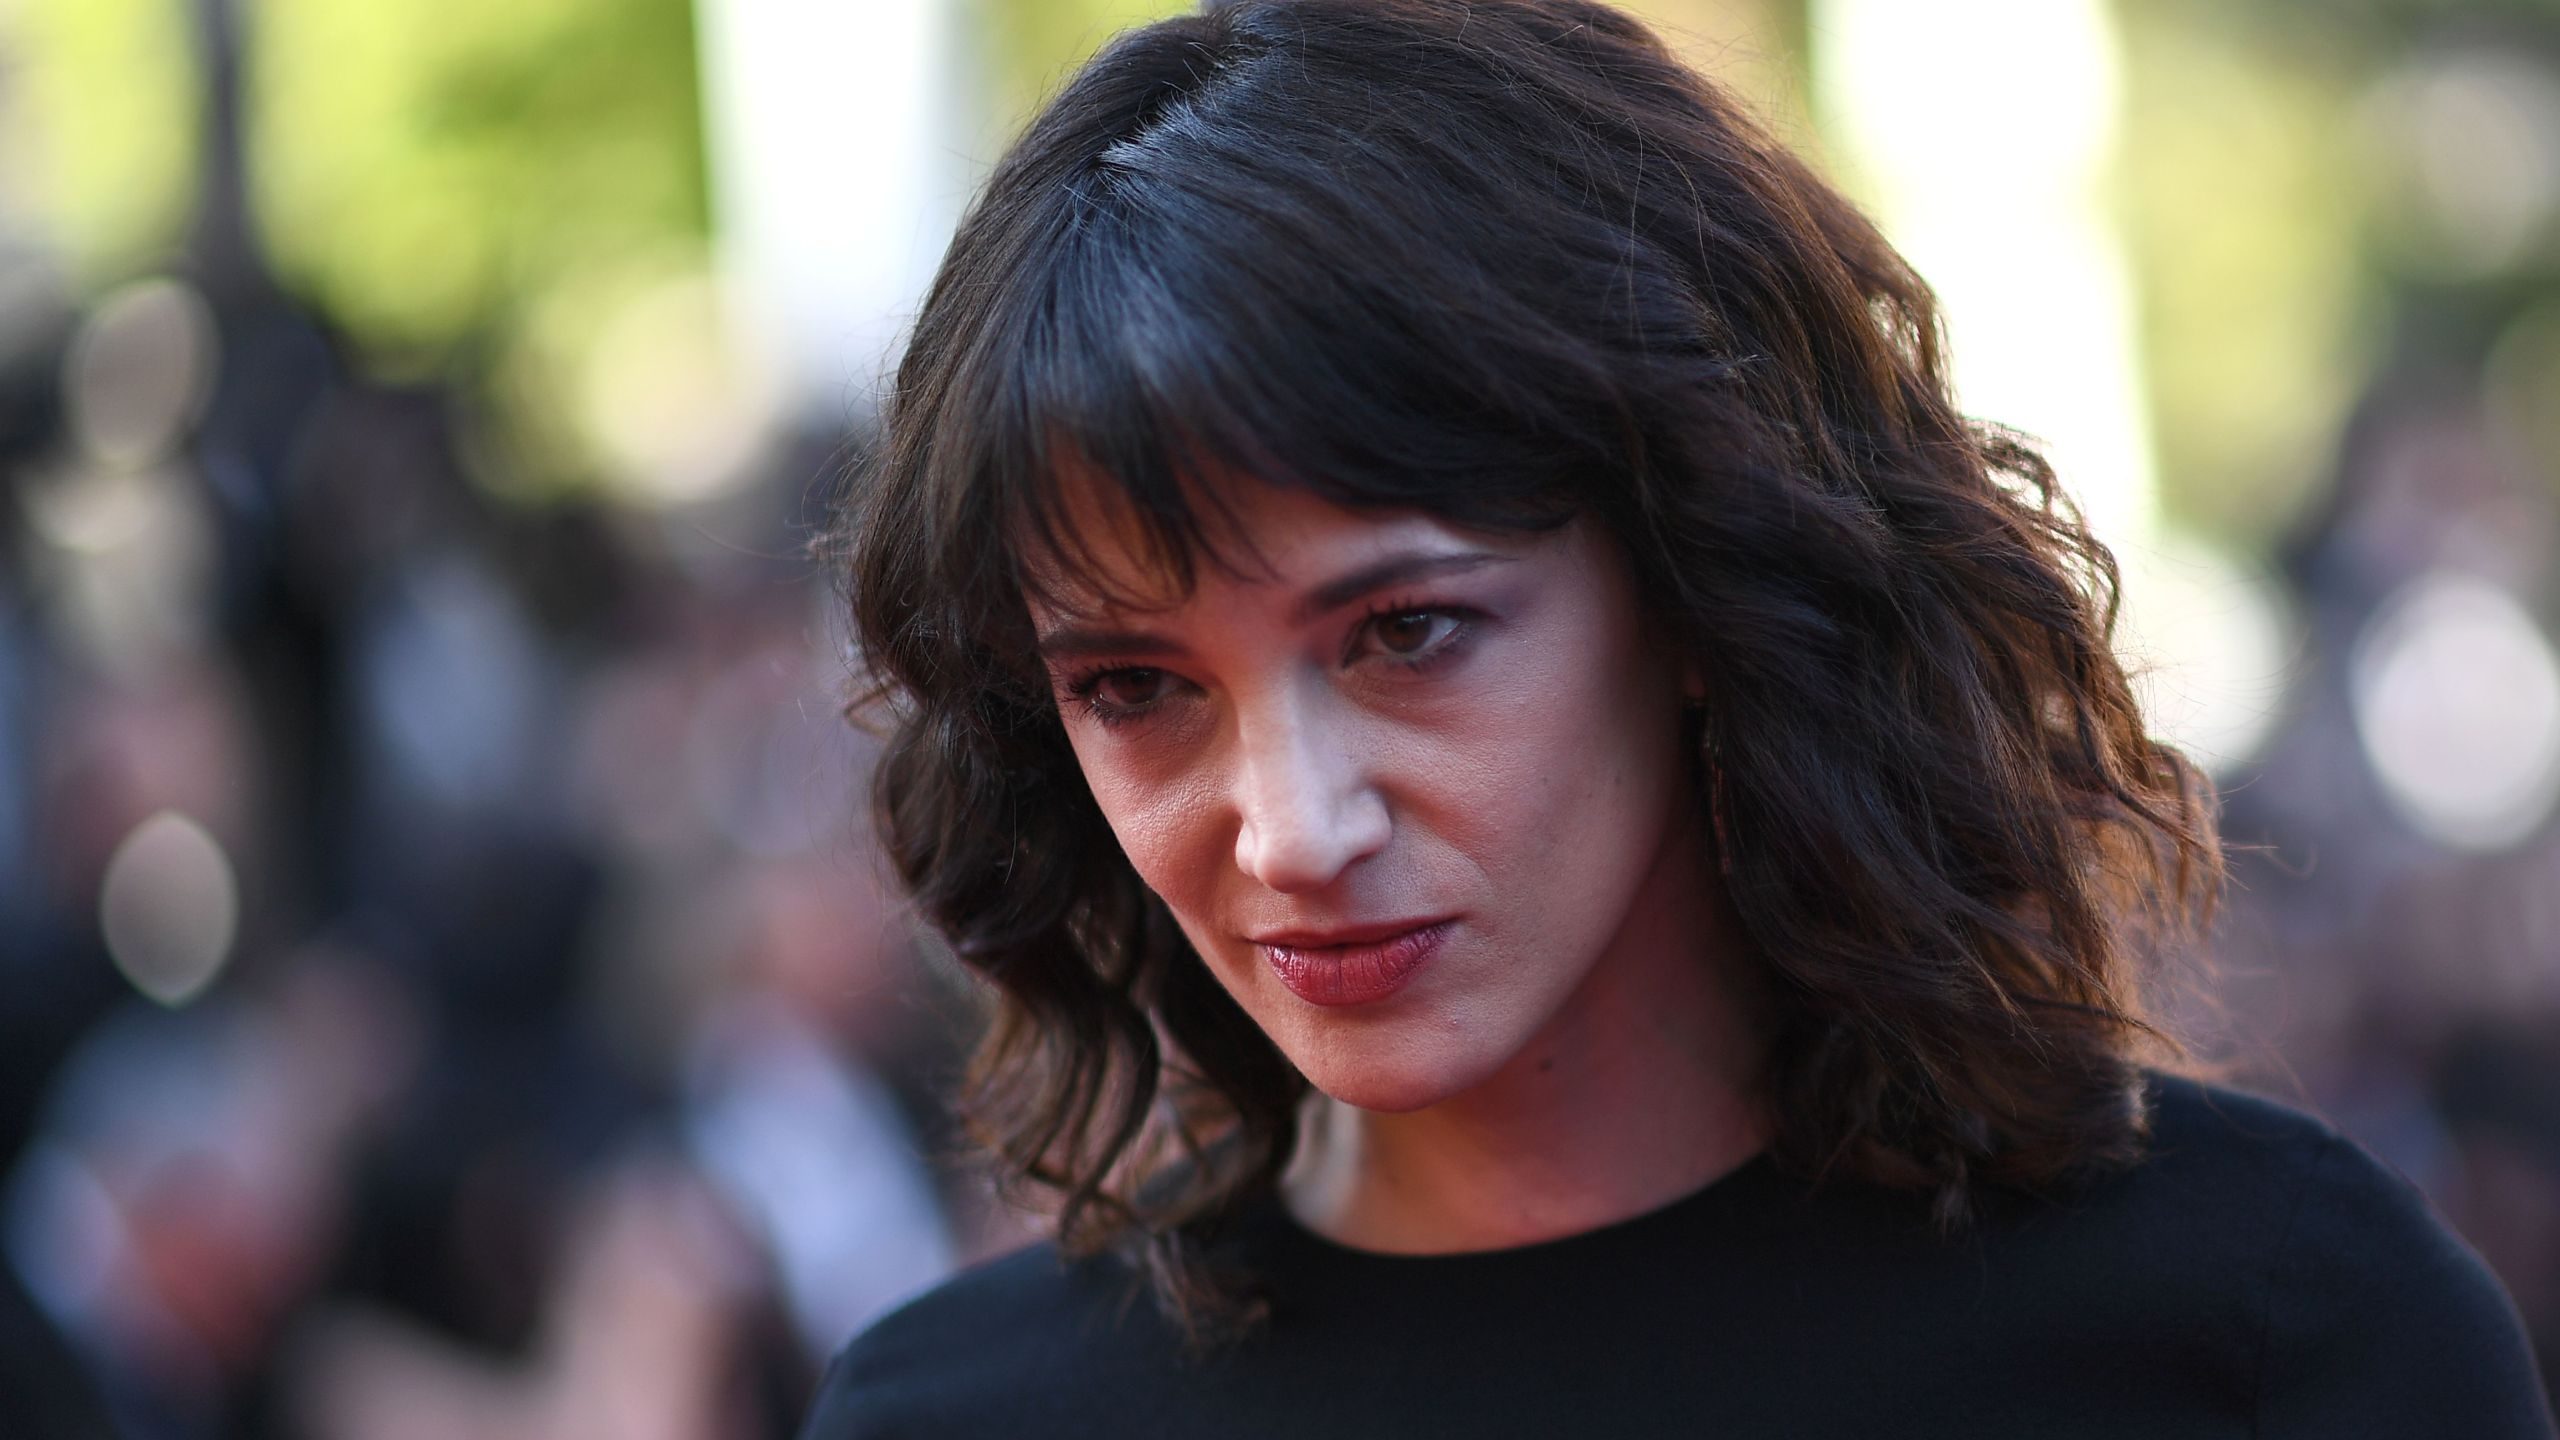 """Asia Argento poses as she arrives on May 19, 2018 for the closing ceremony and the screening of the film """"The Man Who Killed Don Quixote"""" at the 71st edition of the Cannes Film Festival in Cannes, France. (Credit: ANNE-CHRISTINE POUJOULAT/AFP/Getty Images)"""